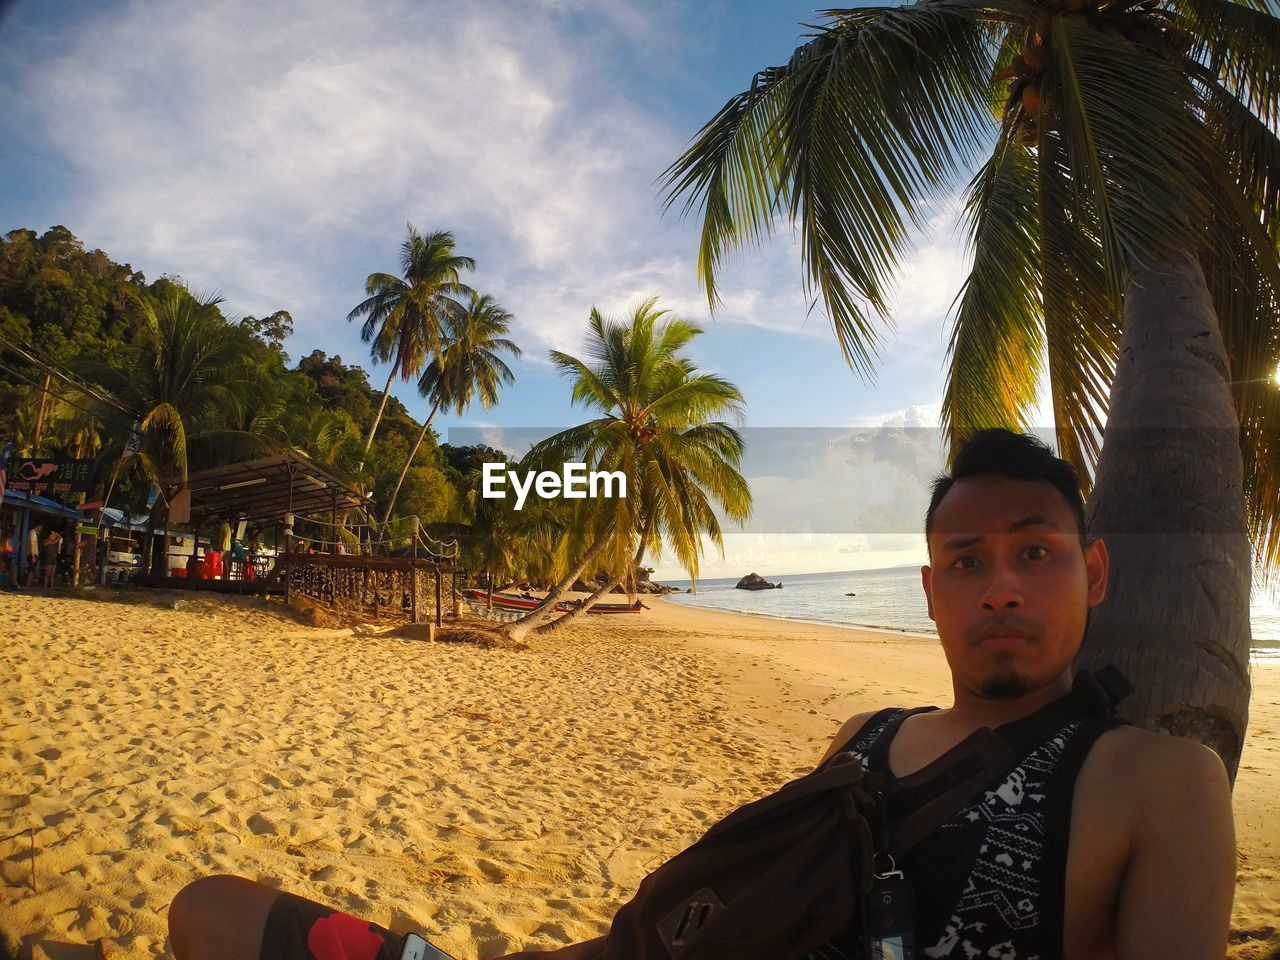 tropical climate, palm tree, beach, tree, land, sky, real people, sand, one person, leisure activity, plant, lifestyles, looking at camera, nature, portrait, beauty in nature, young adult, sea, sitting, young men, outdoors, coconut palm tree